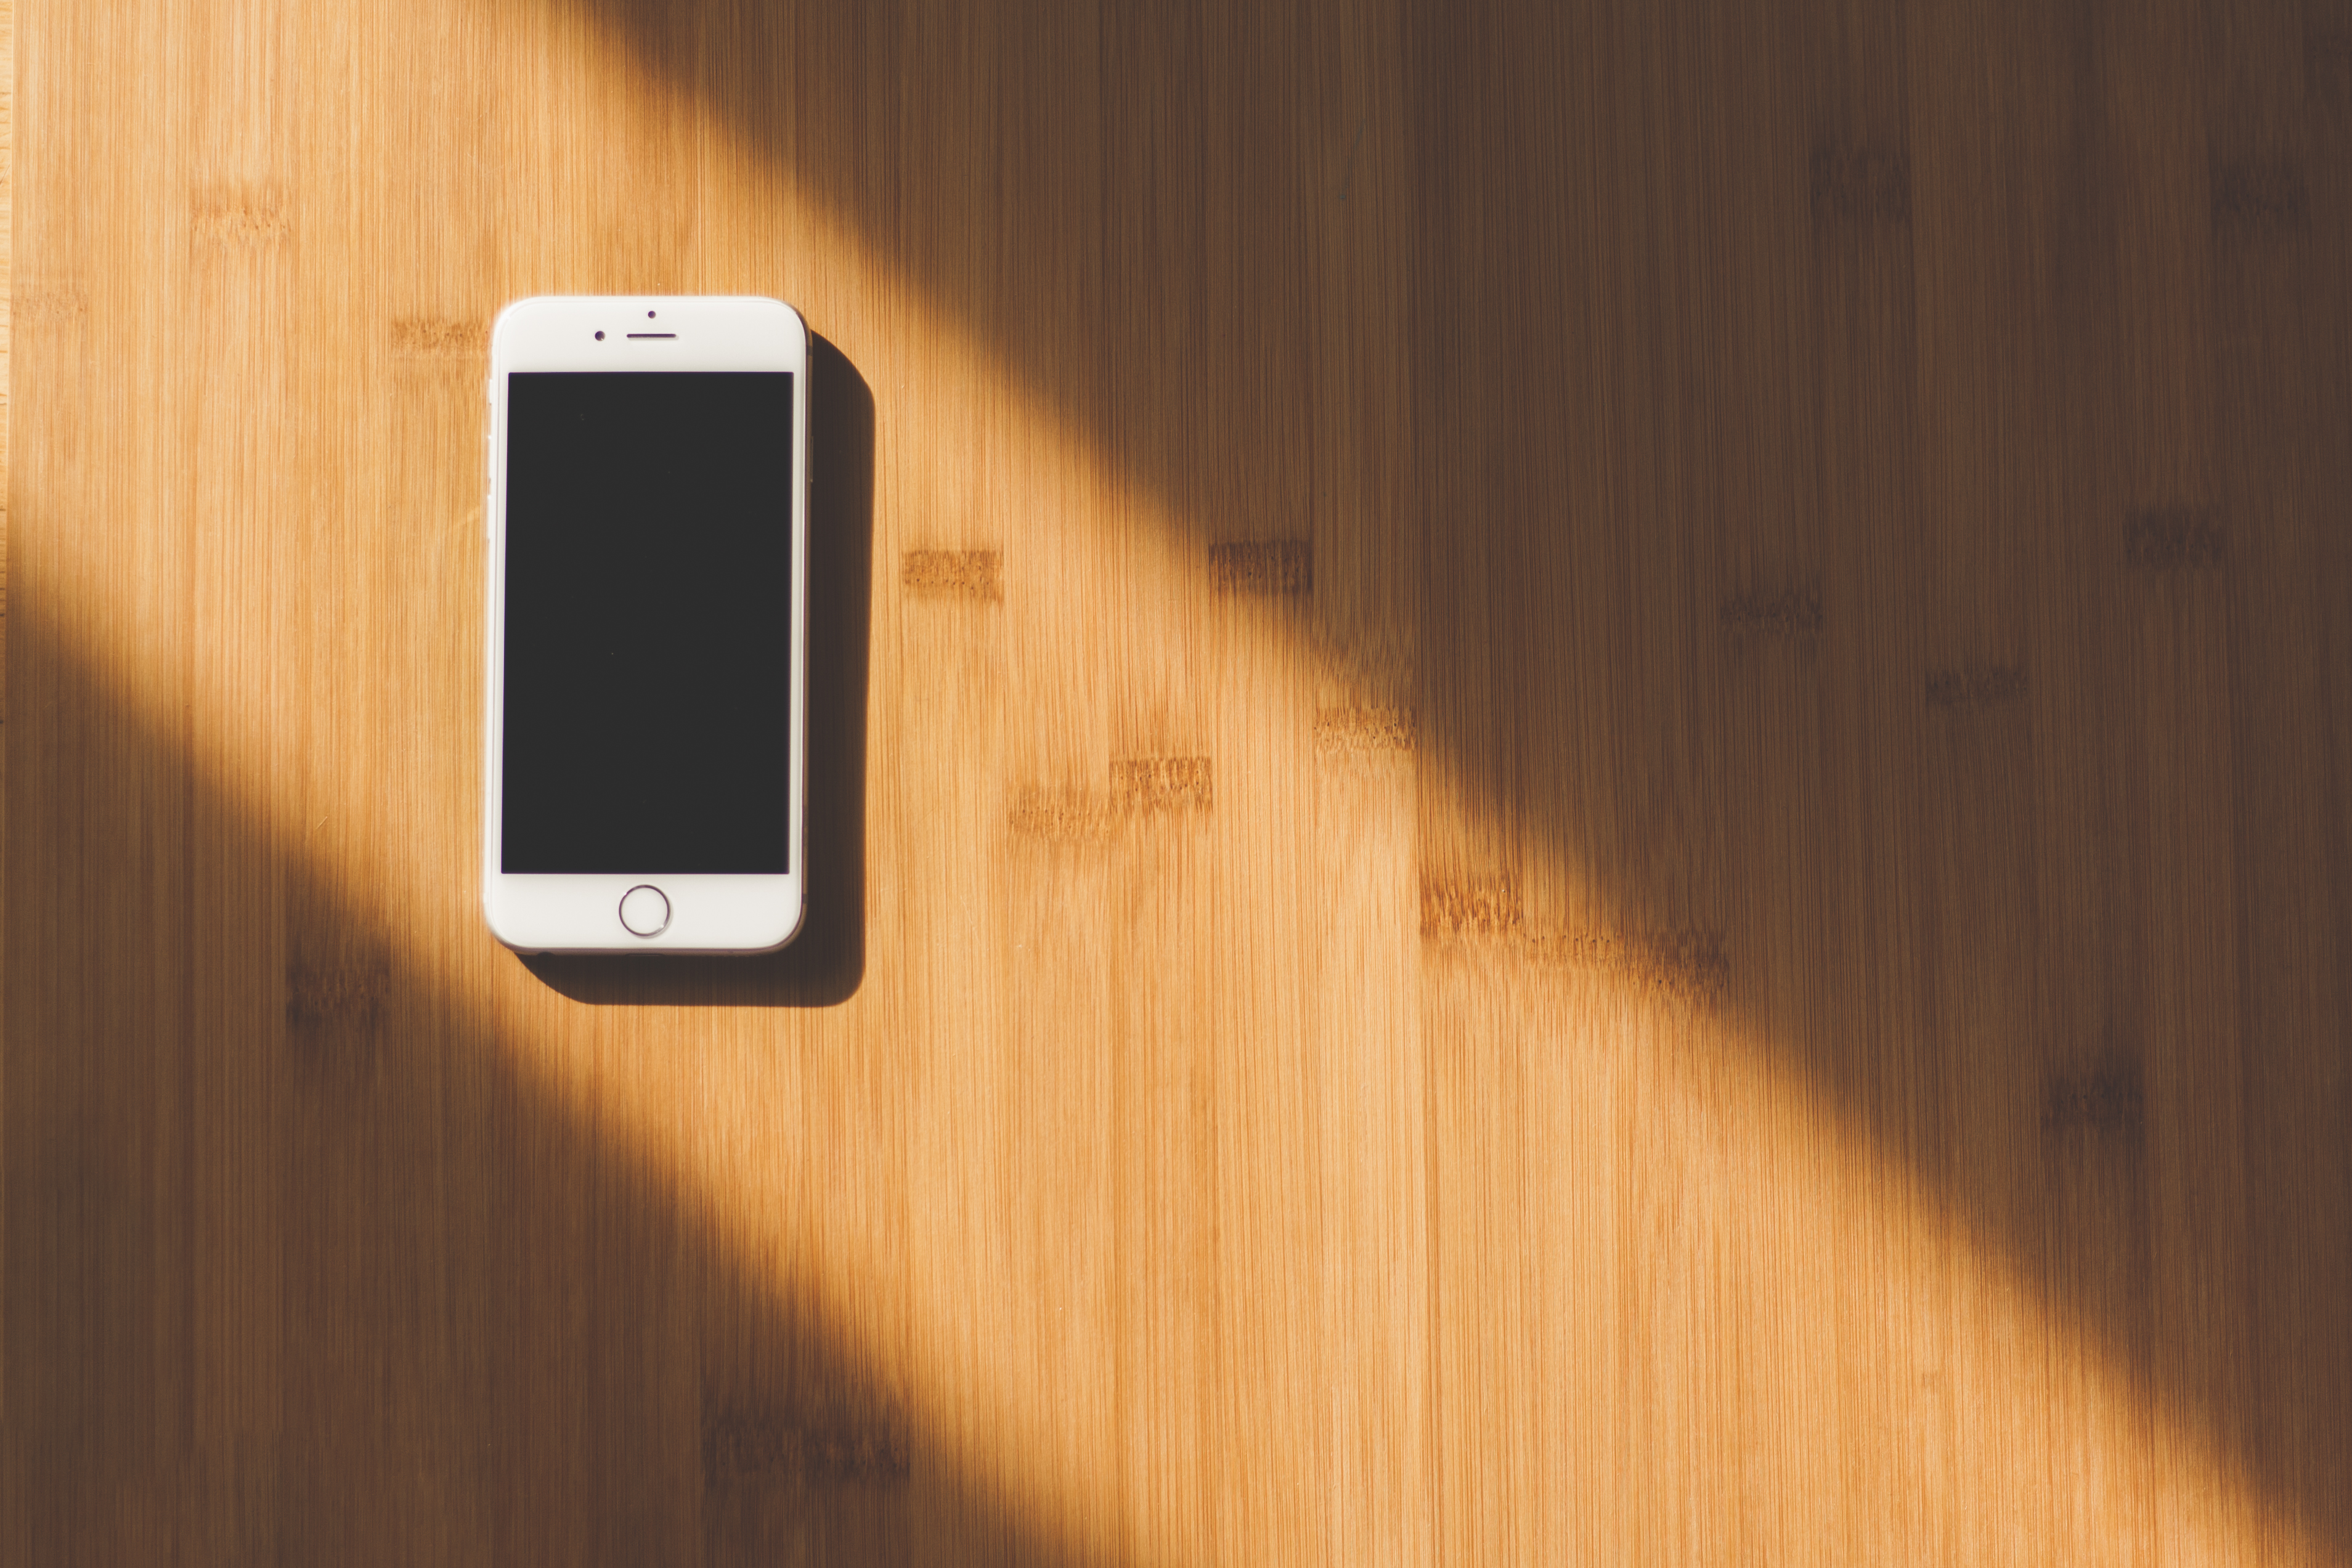 White Apple Iphone On Wooden Table 183 Free Stock Photo